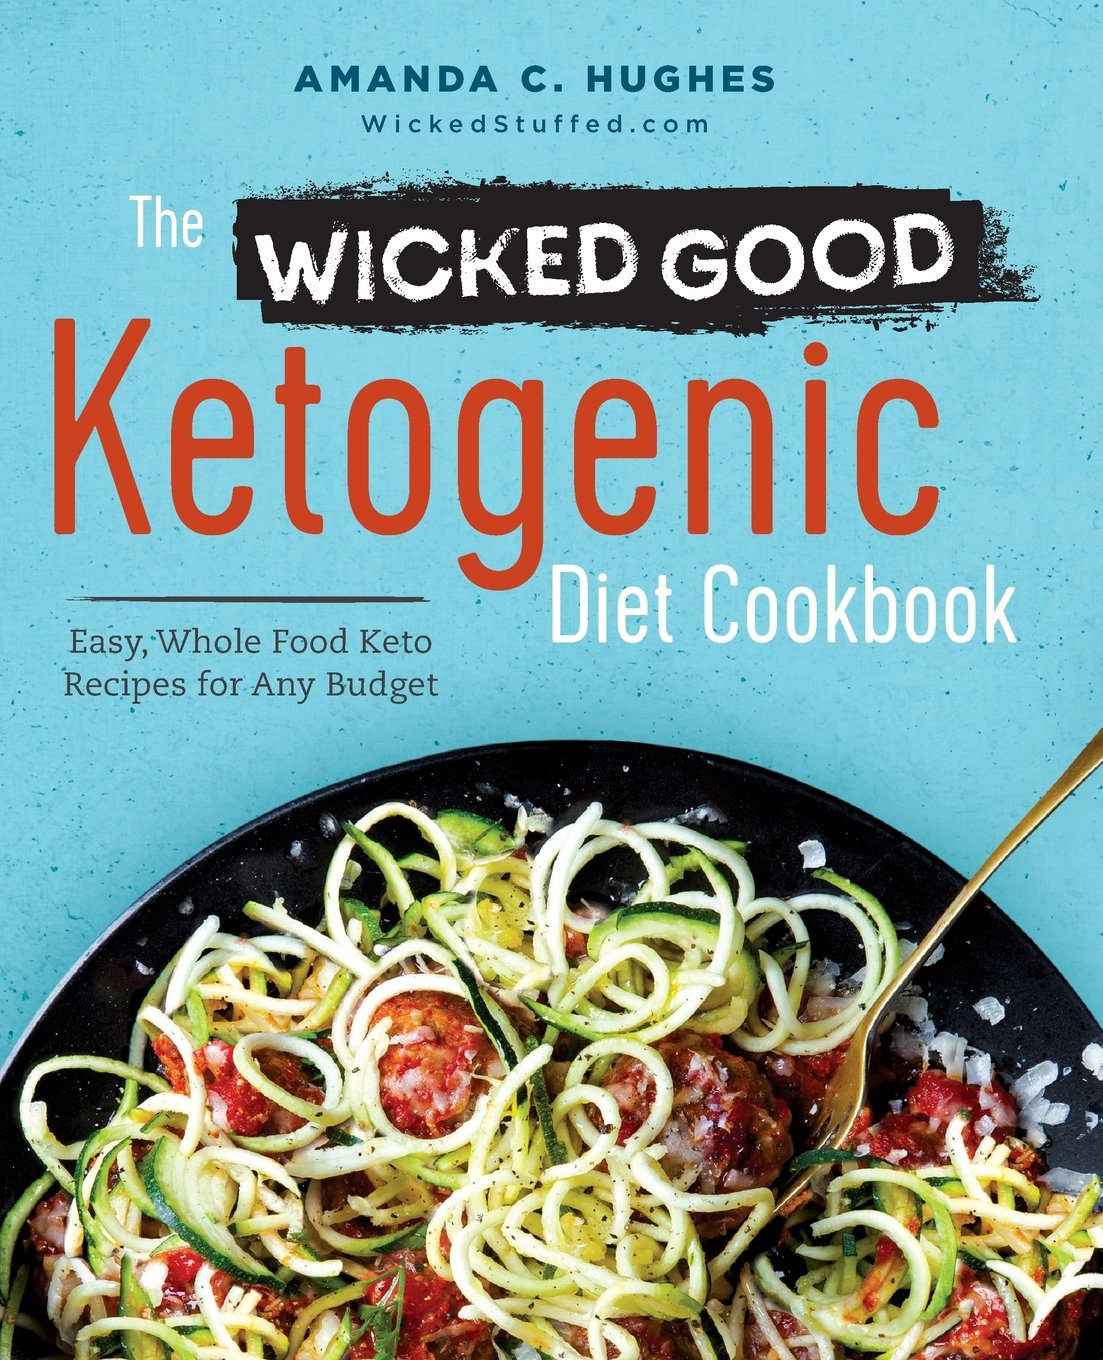 Amazon the wicked good ketogenic diet cookbook easy whole amazon the wicked good ketogenic diet cookbook easy whole food keto recipes for any budget 9781623157340 amanda c hughes books forumfinder Choice Image